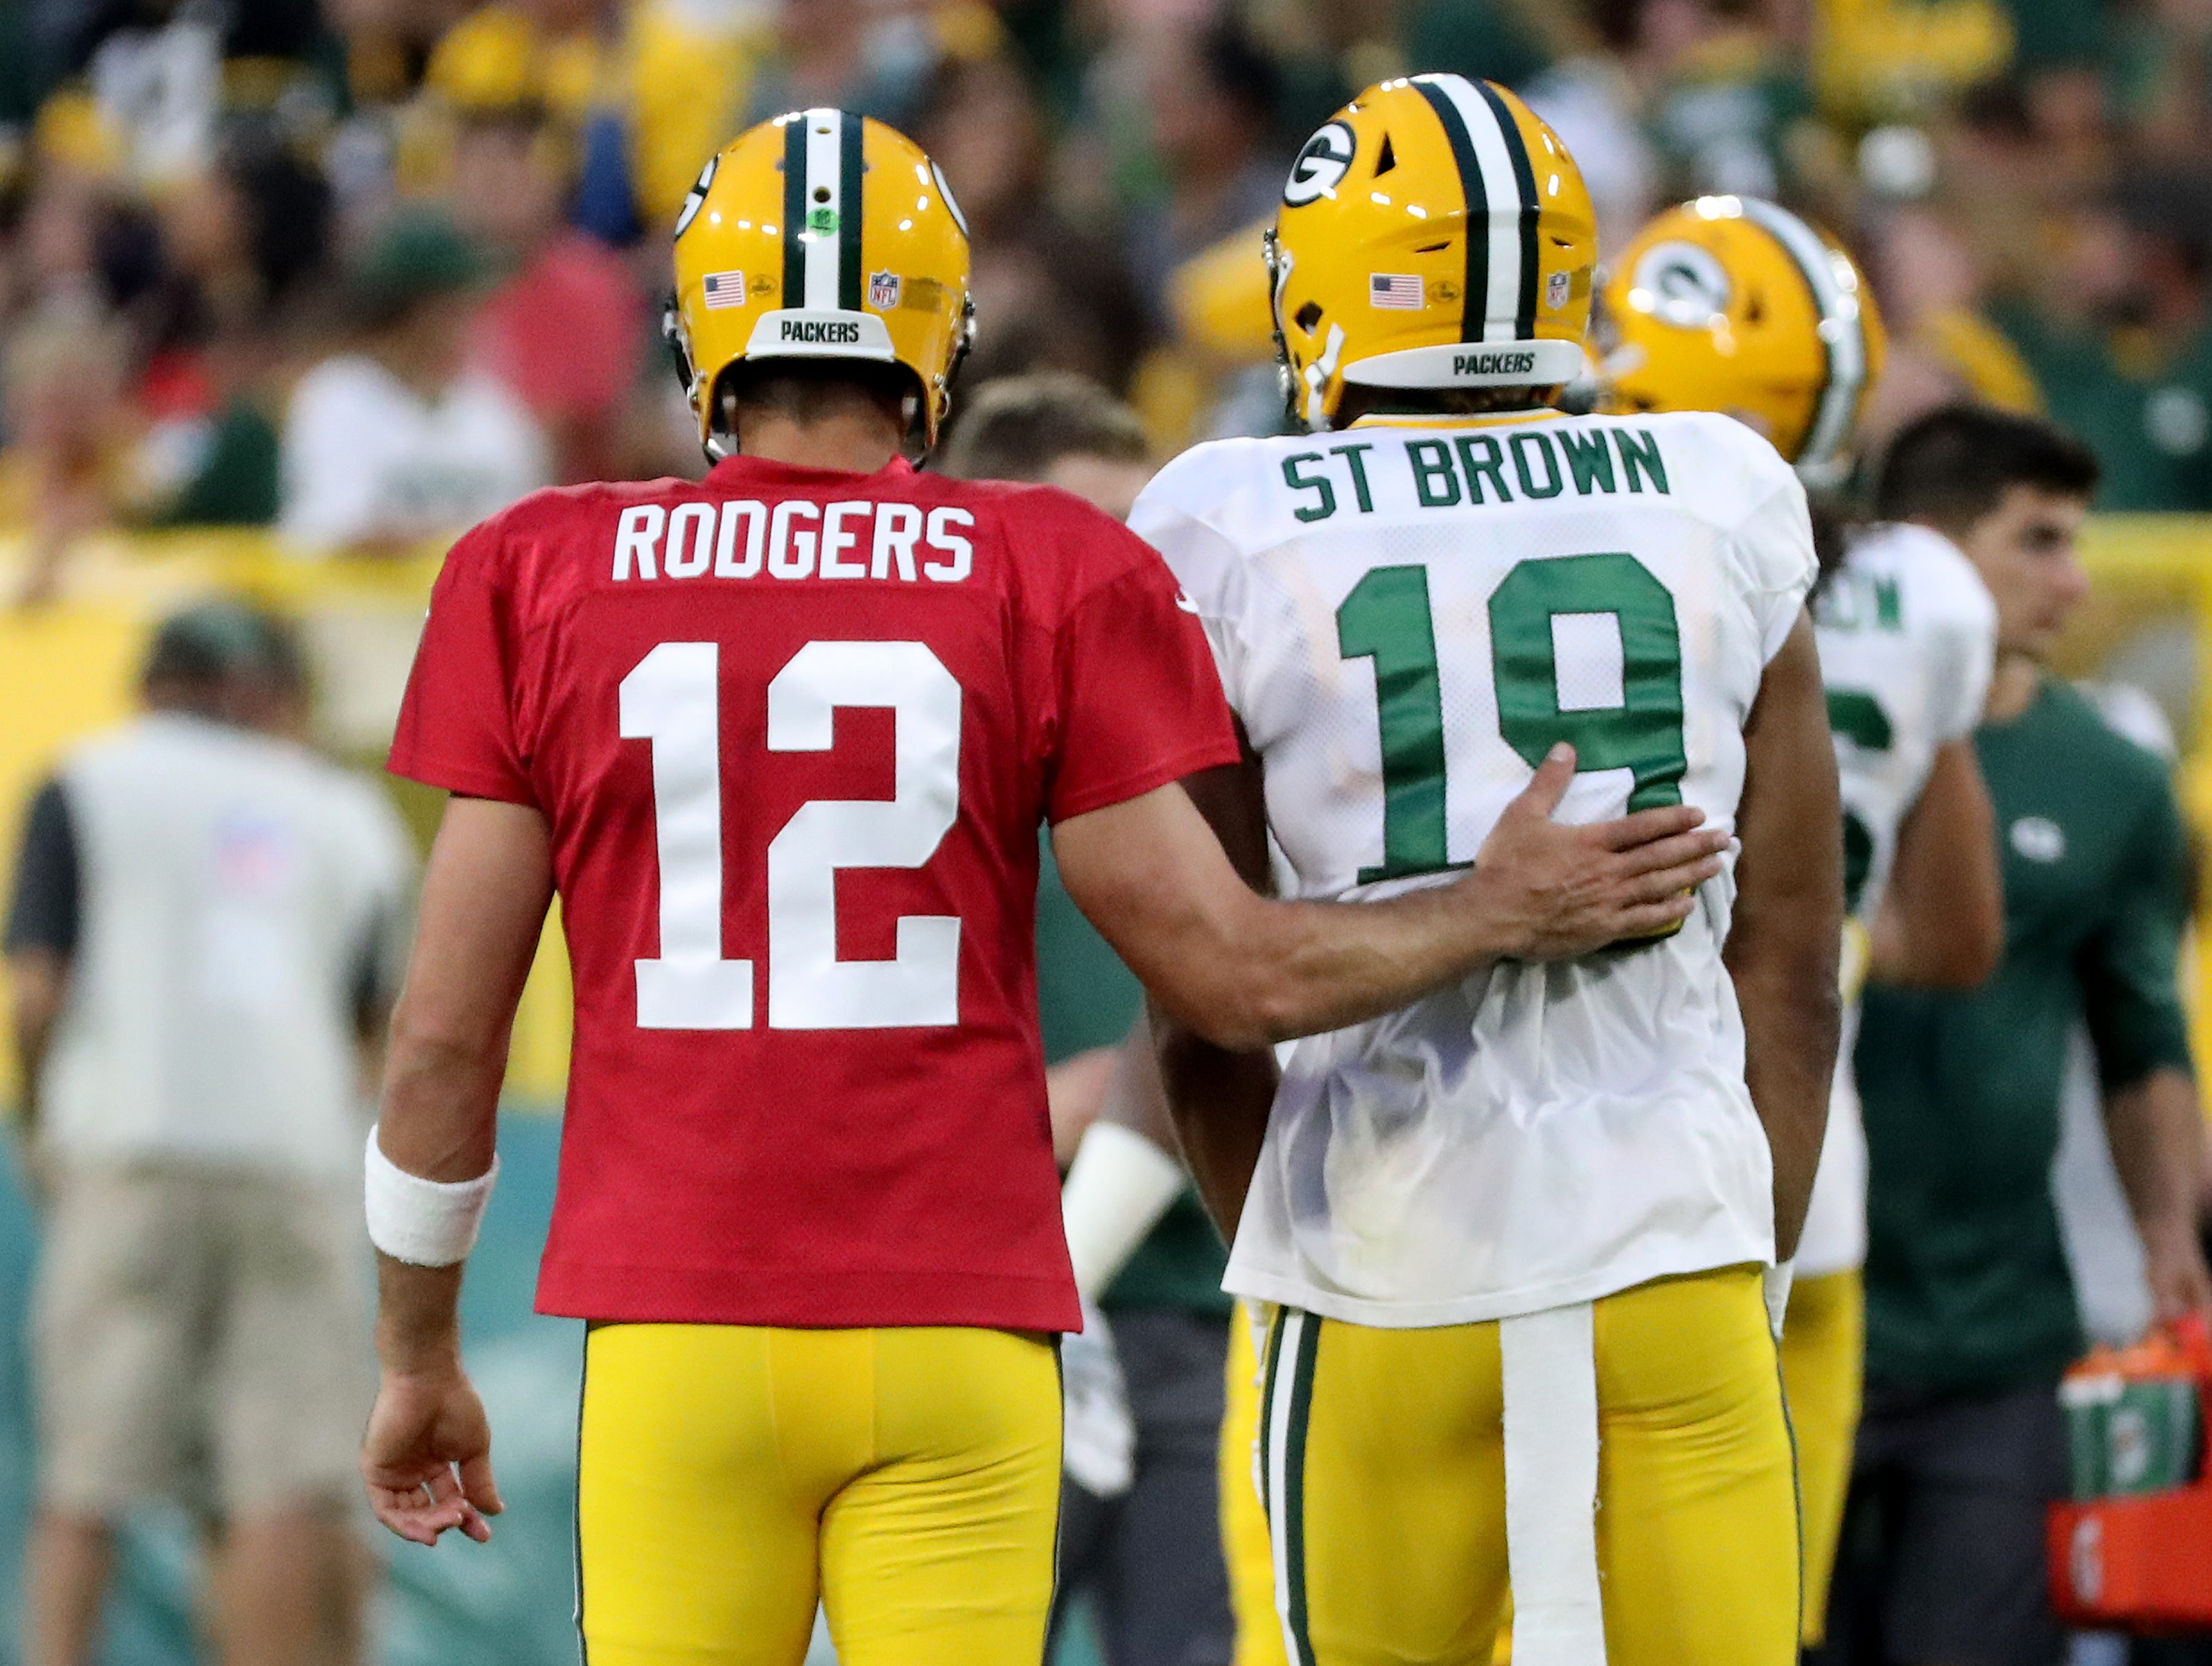 Green Bay Packers quarterback Aaron Rodgers (12) consoles wide receiver Equanimeous St. Brown (19) after he dropped a pass during Green Bay Packers Family Night  Saturday, August 4, 2018 at Lambeau Field in Green Bay, Wis.,